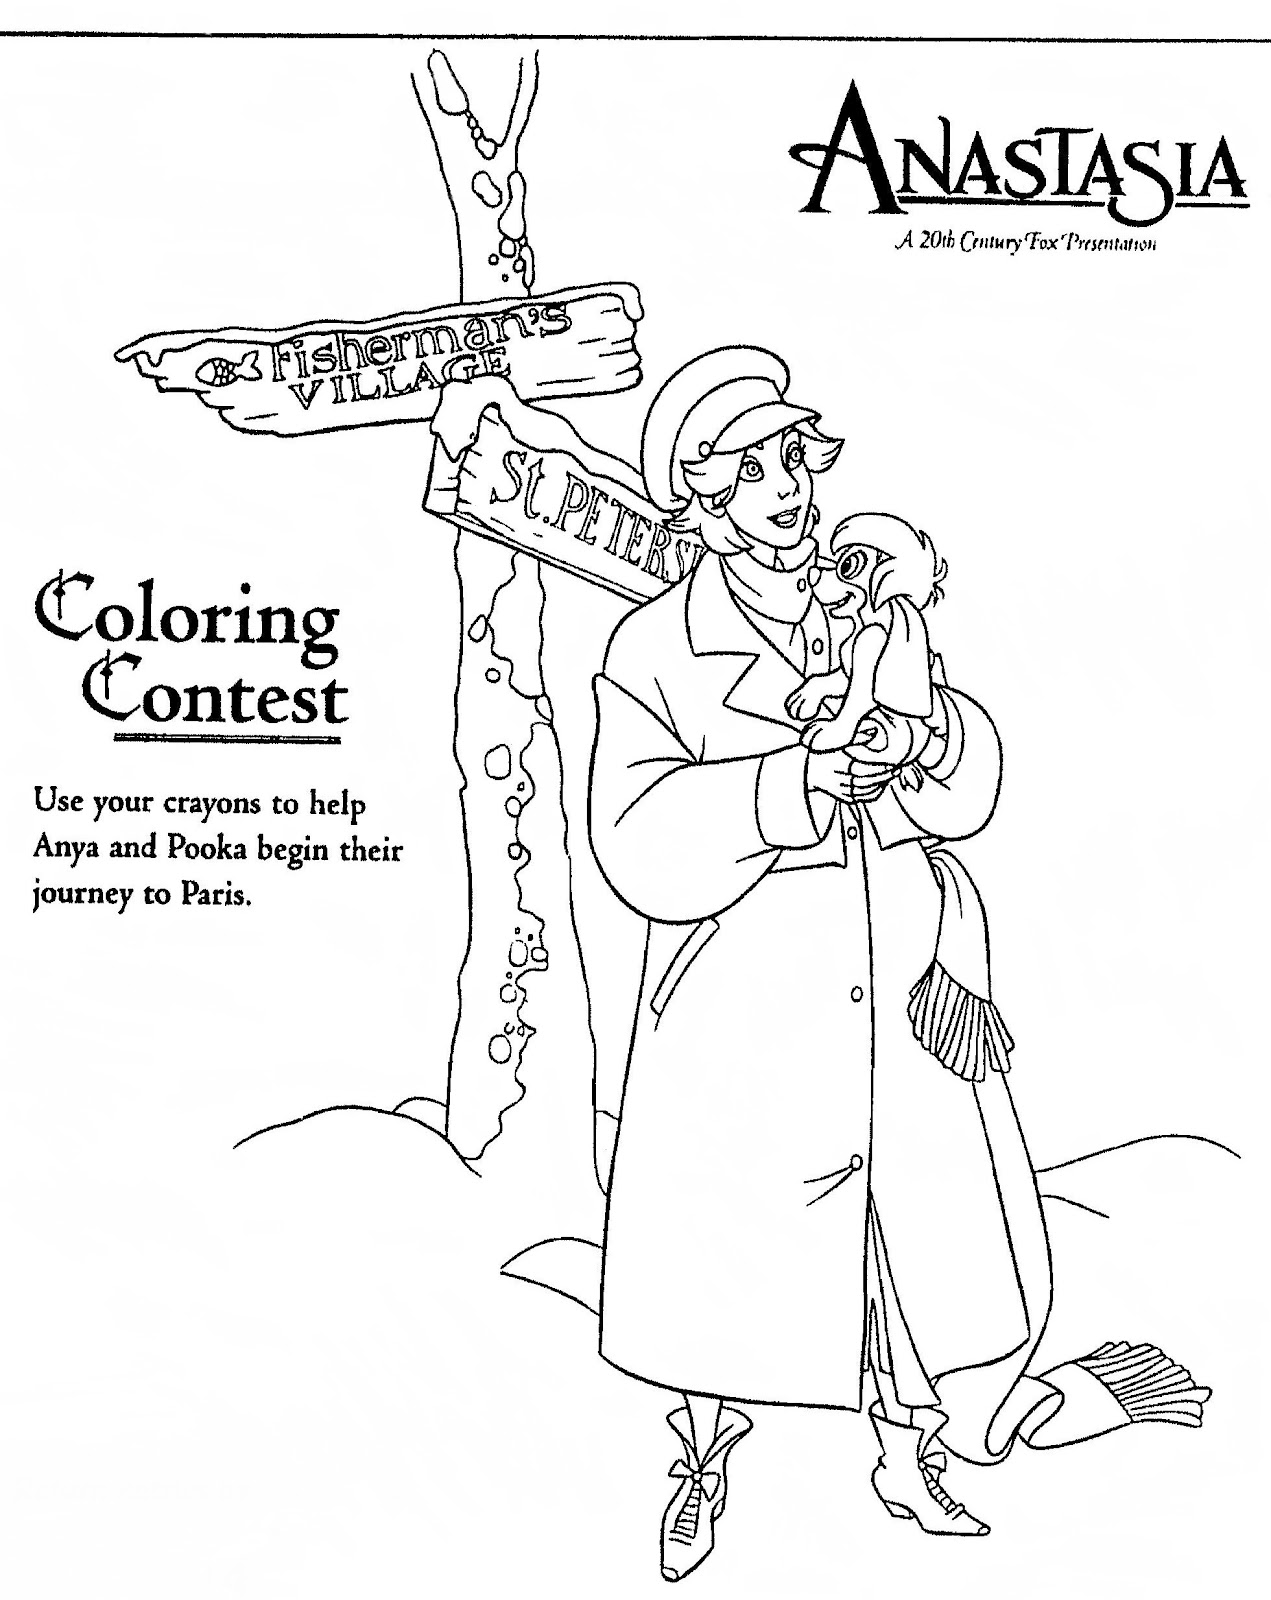 Mostly Paper Dolls: ANASTASIA Movie Coloring Contests, 1997